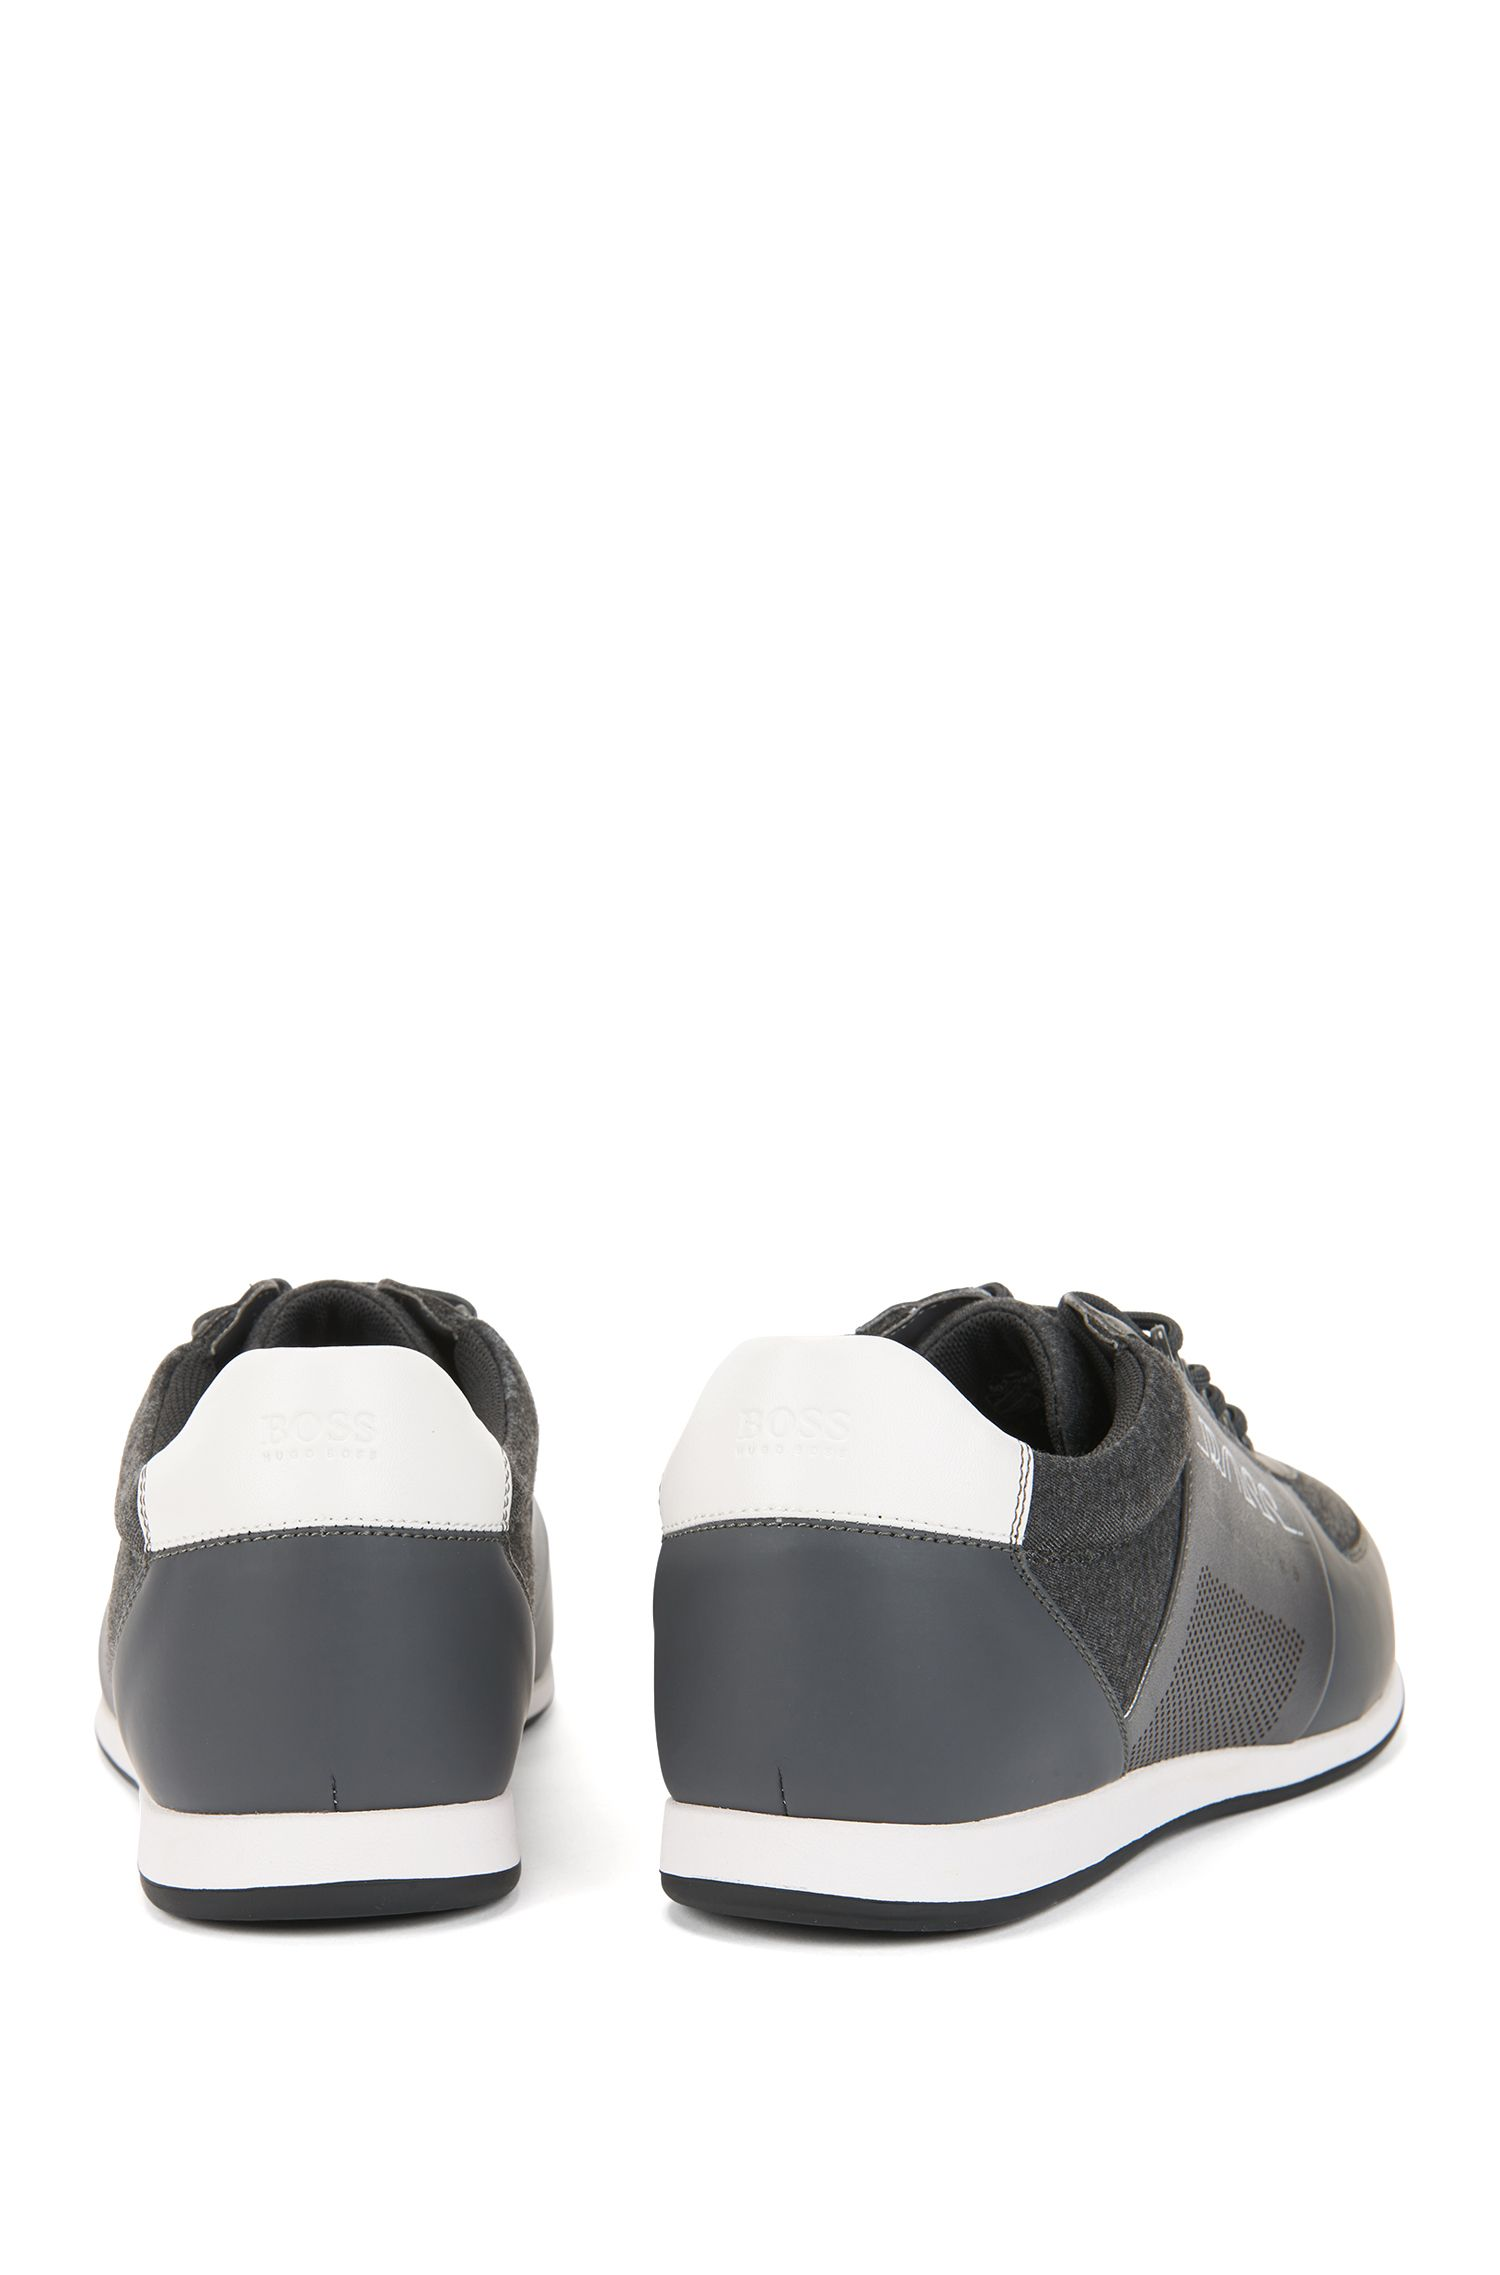 Low-profile sneakers in neoprene and technical fabric